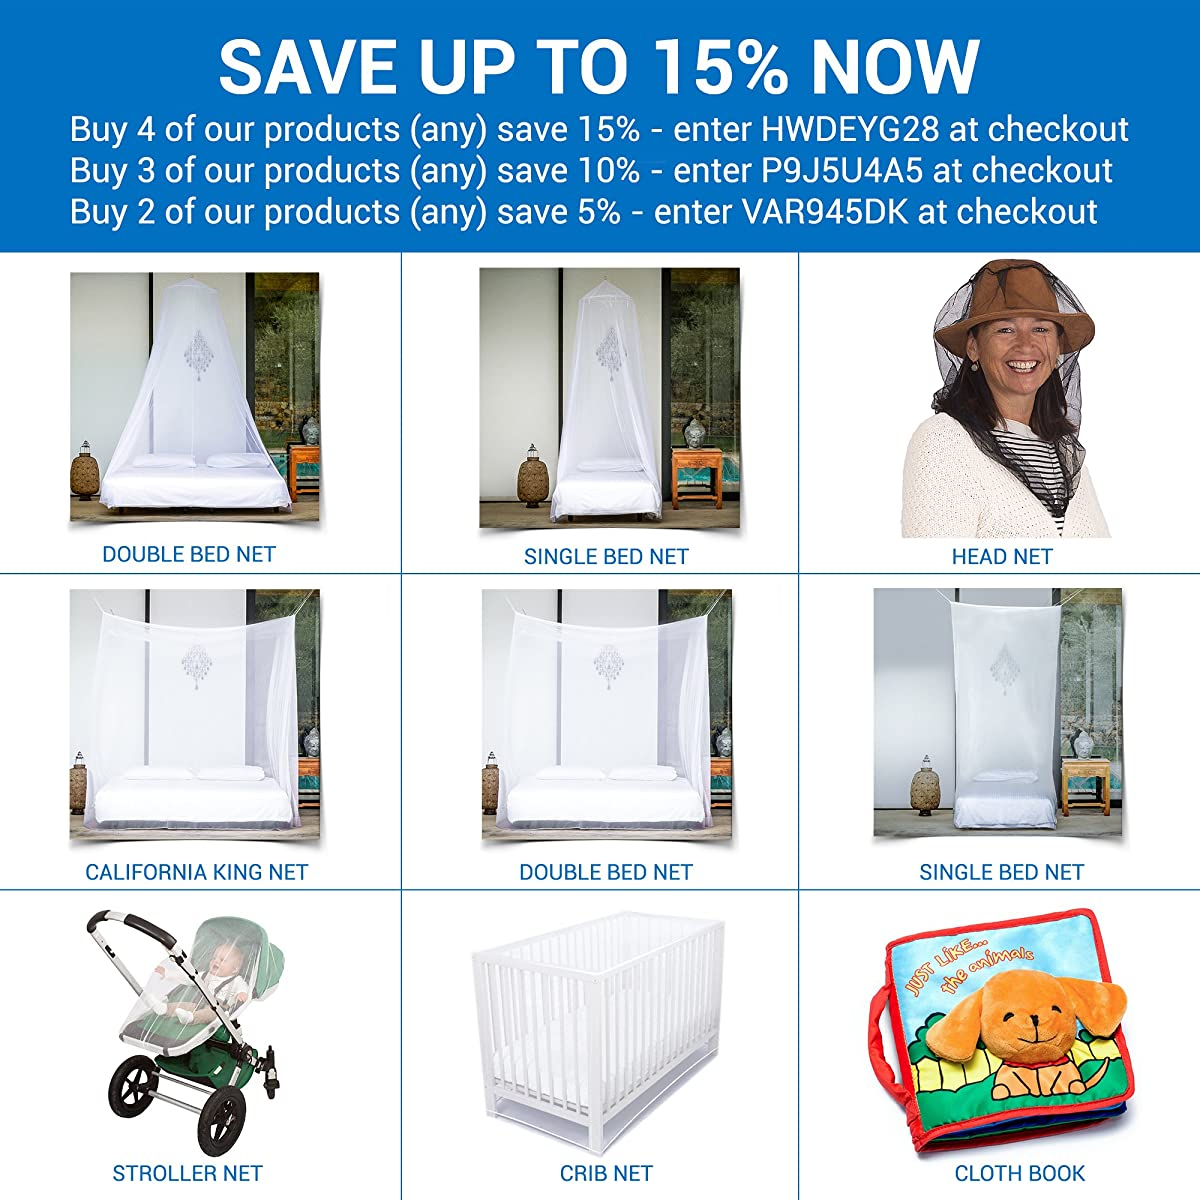 PREMIUM MOSQUITO NET for Double Bed by EVEN Naturals, Full Hanging Kit, Carry Bag & Amazing eBook, Circular Screen Netting Canopy Curtains, Insect Protection Repellent, 100% Satisfaction Guarantee